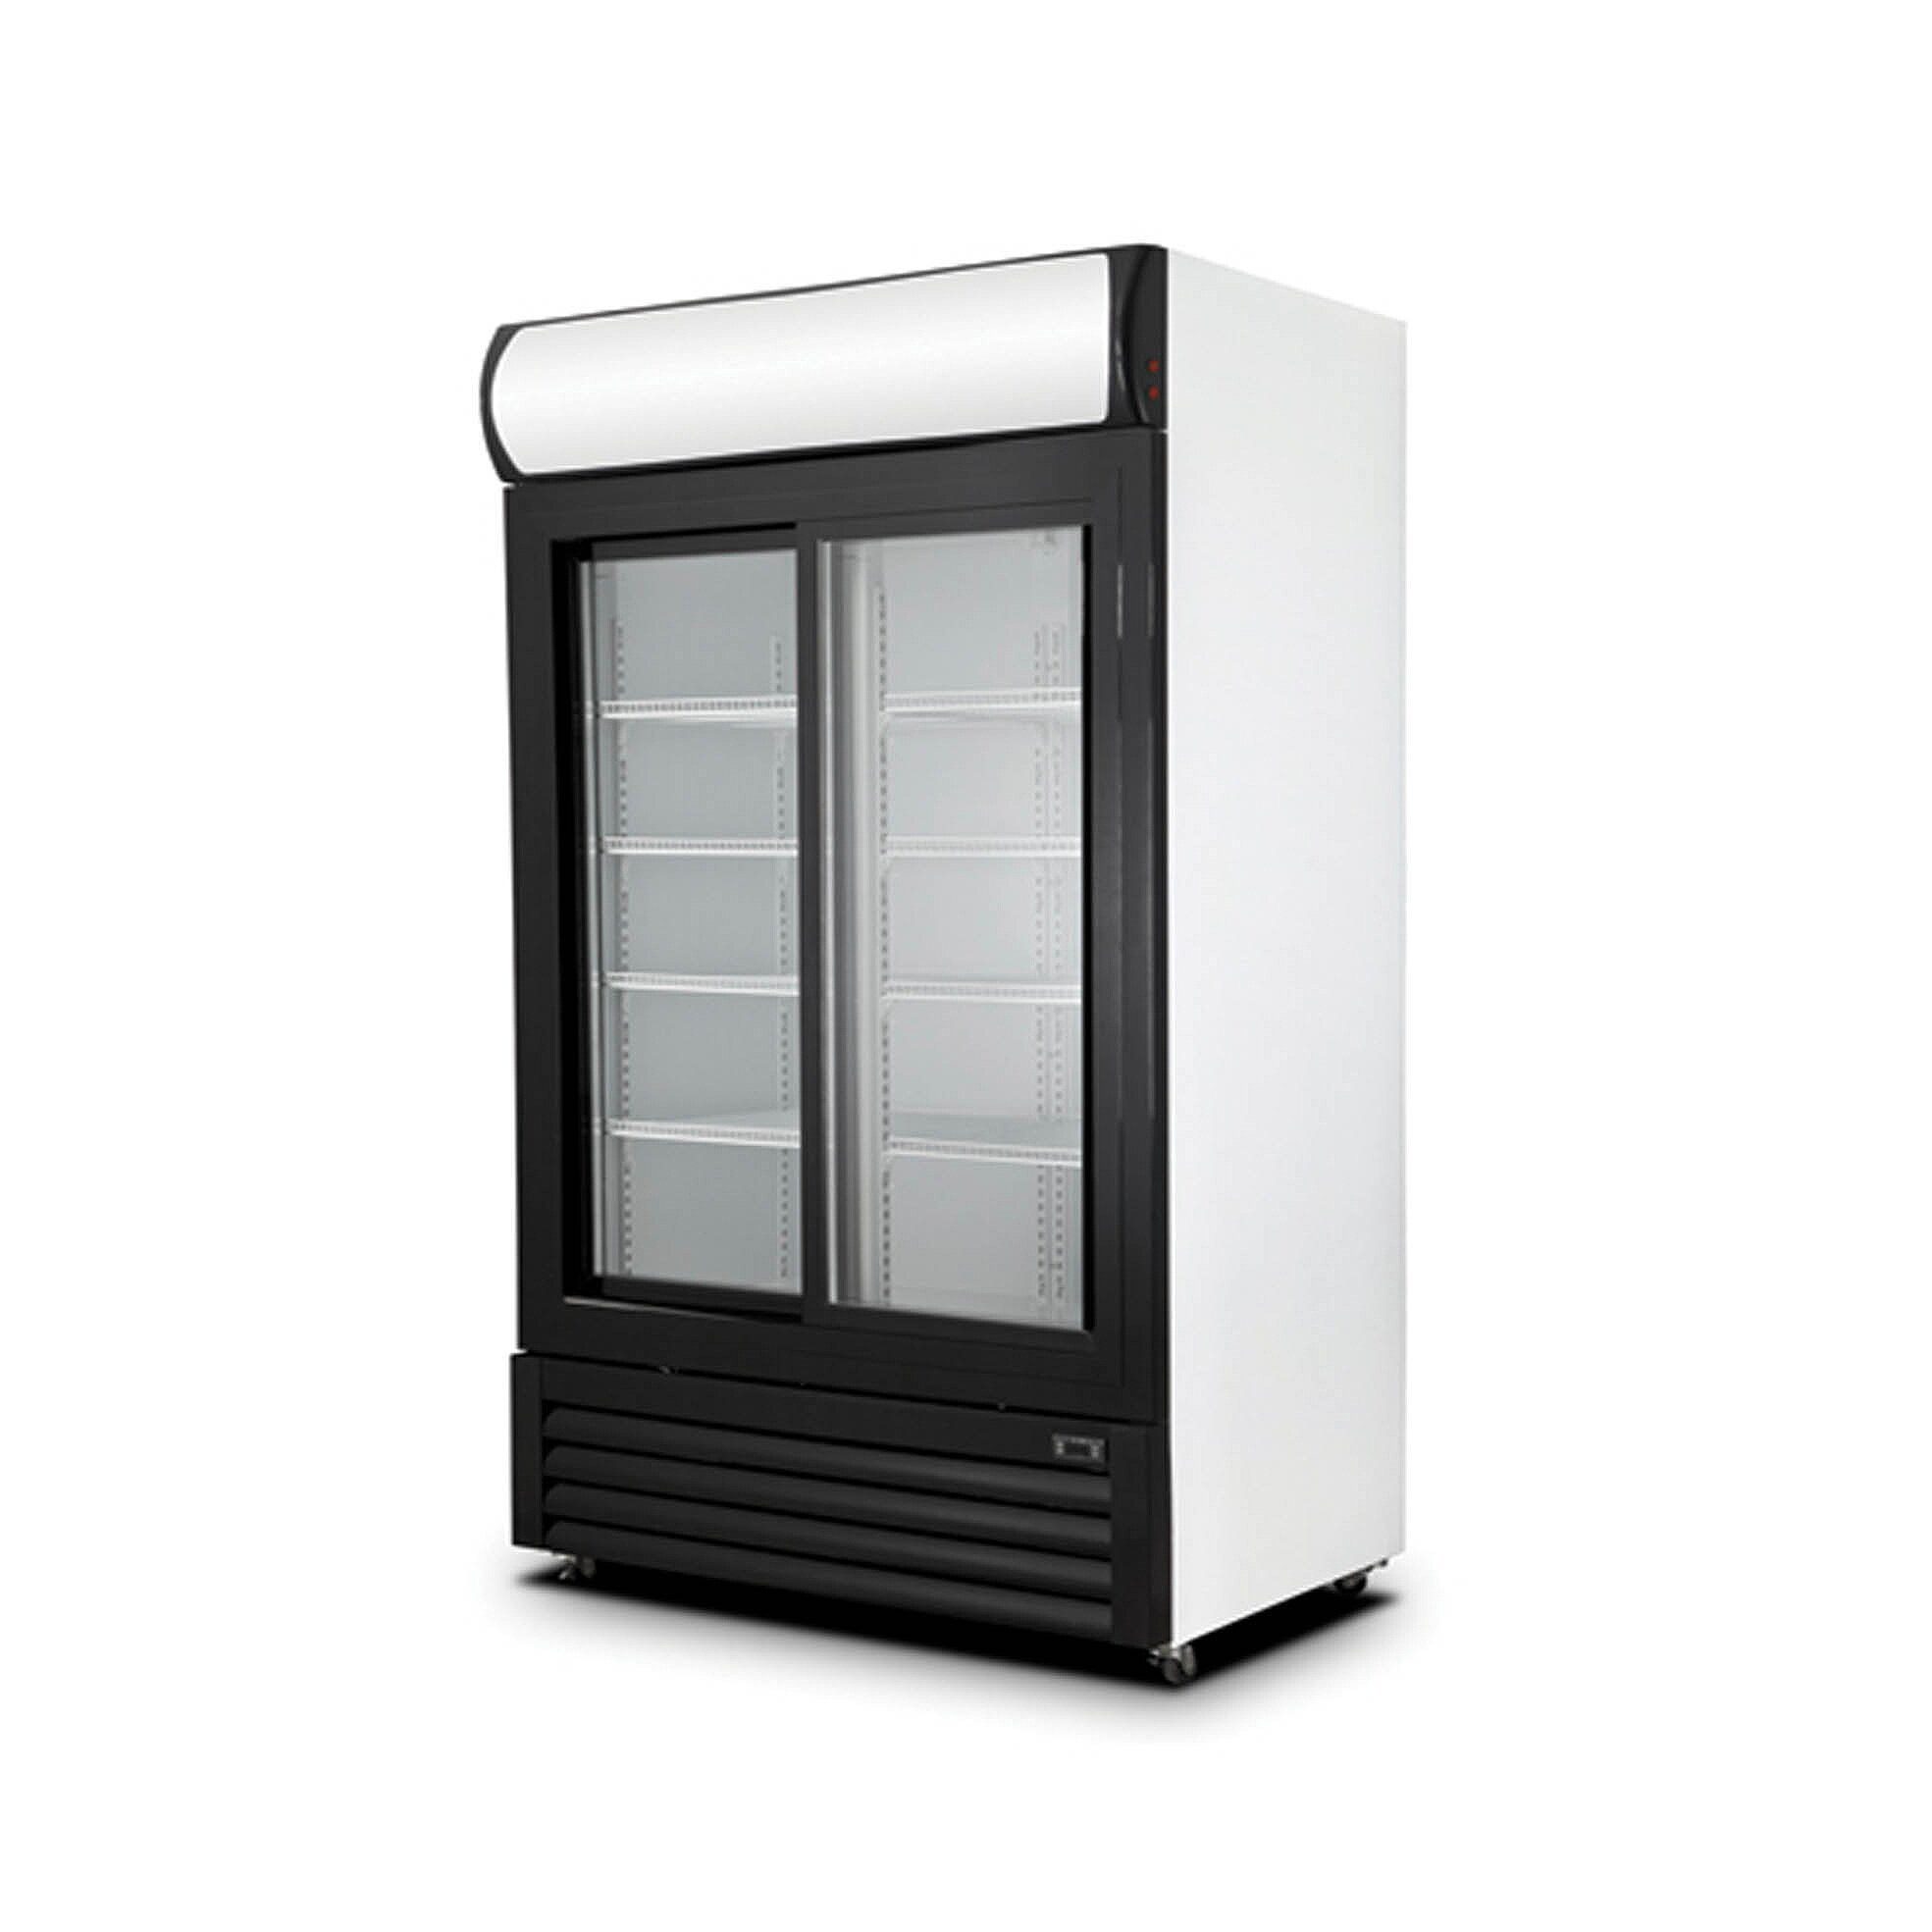 New Air Ngr 080 S 40 2 Sliding Door Glass Refrigerator Merchandiser